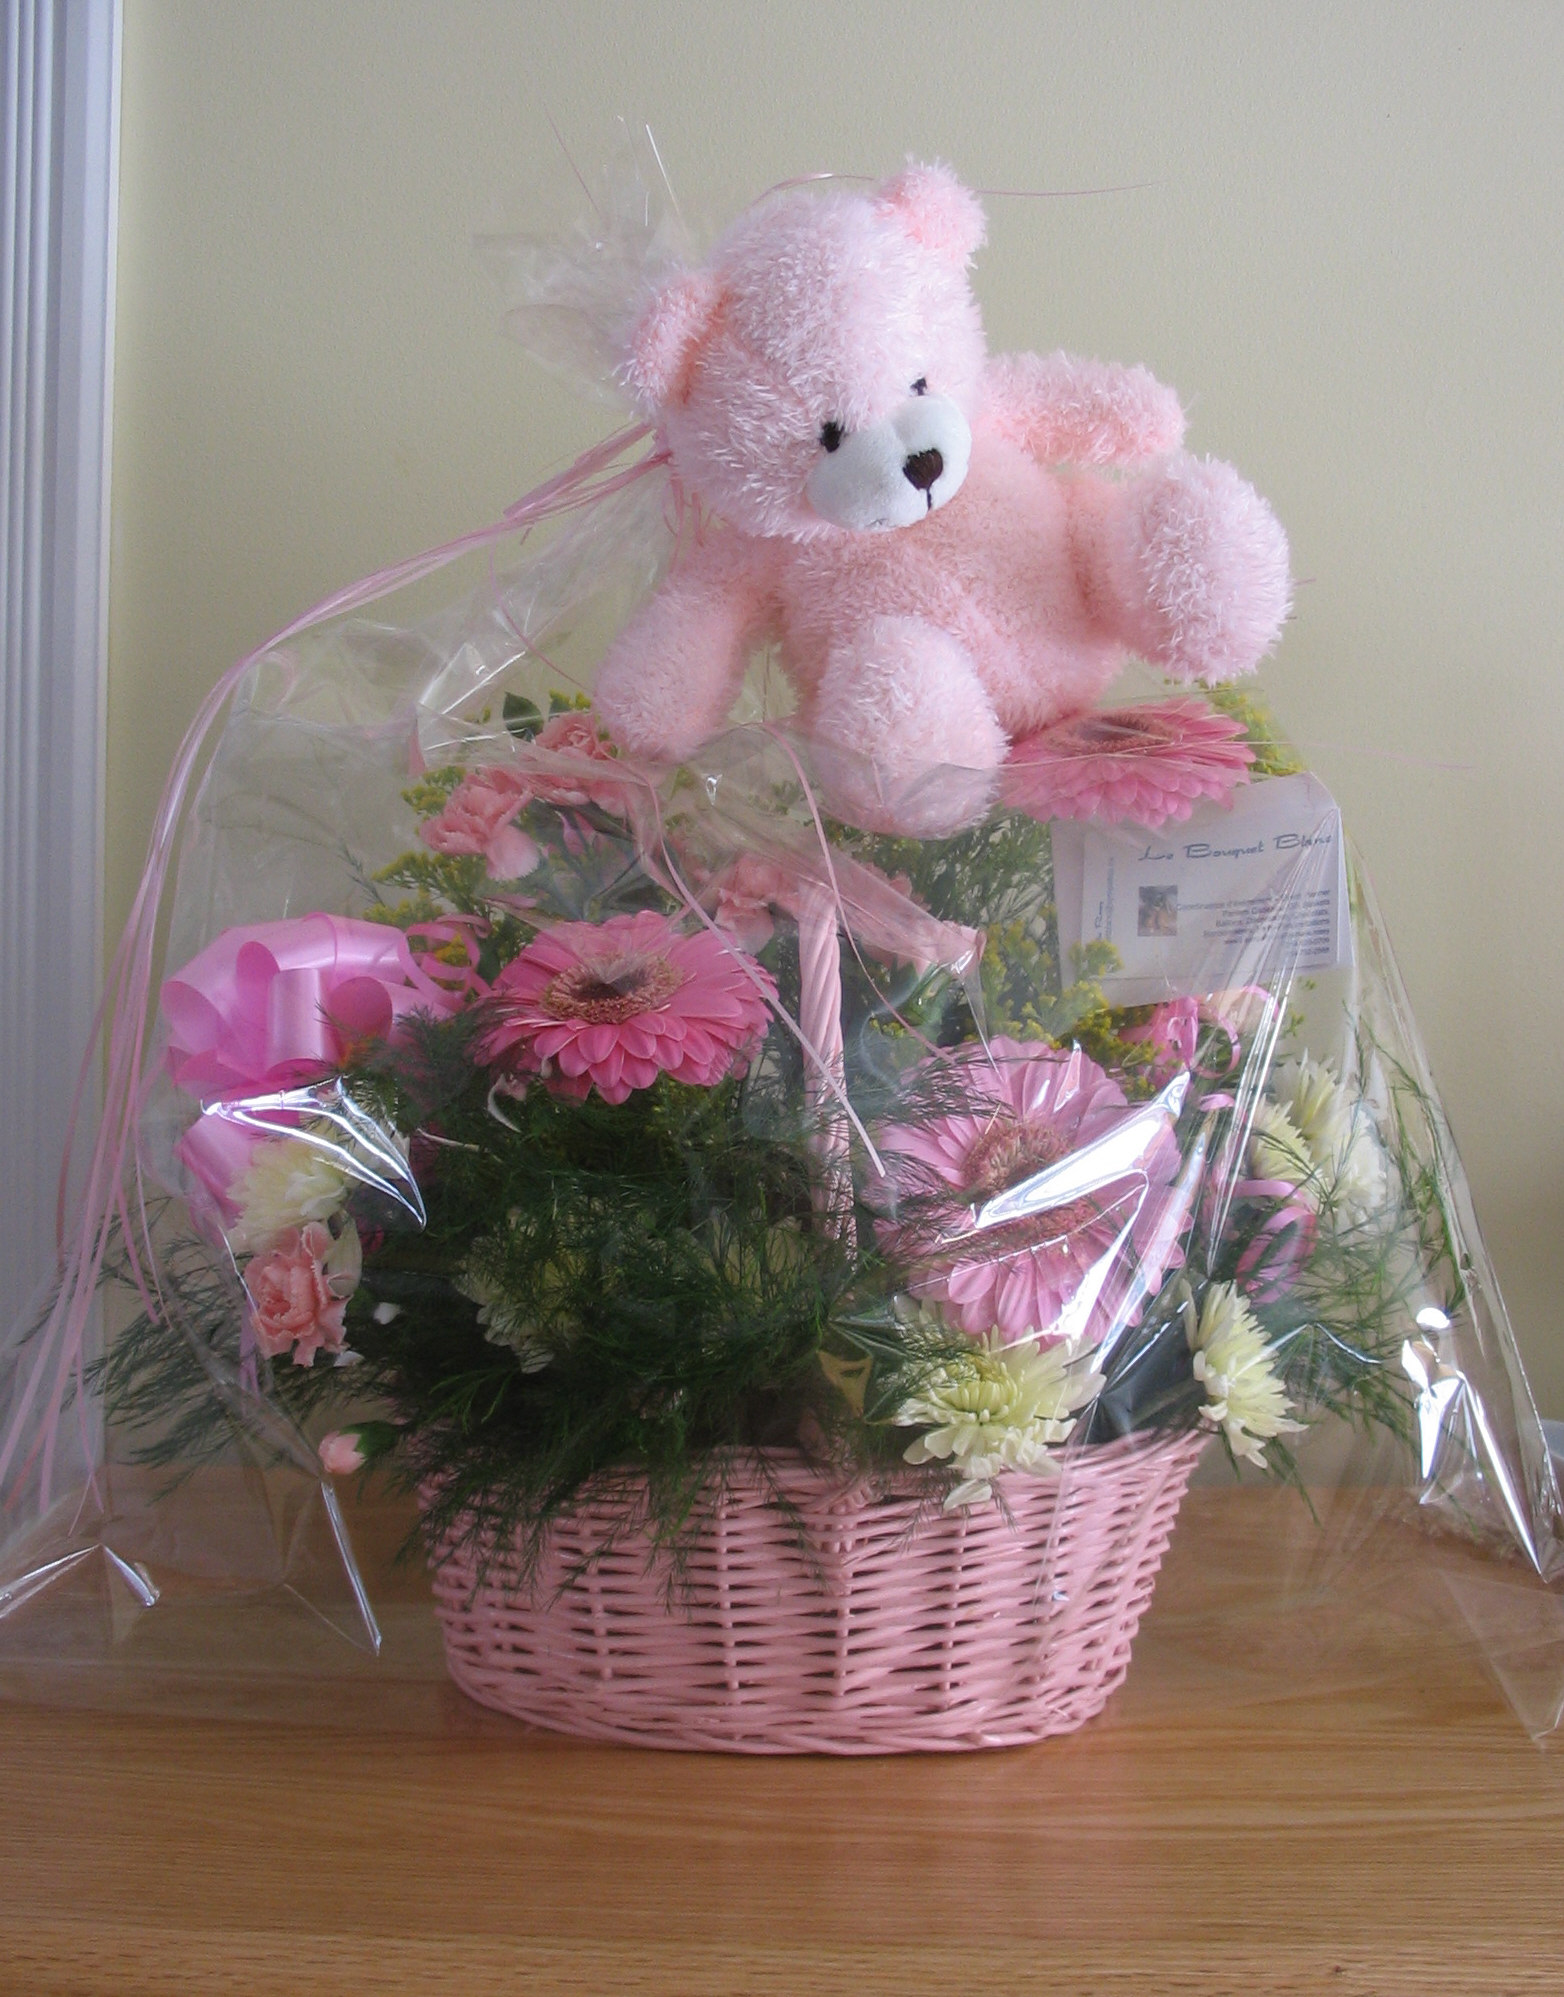 Baby basket flower arrangements by Le Bouquet Blanc